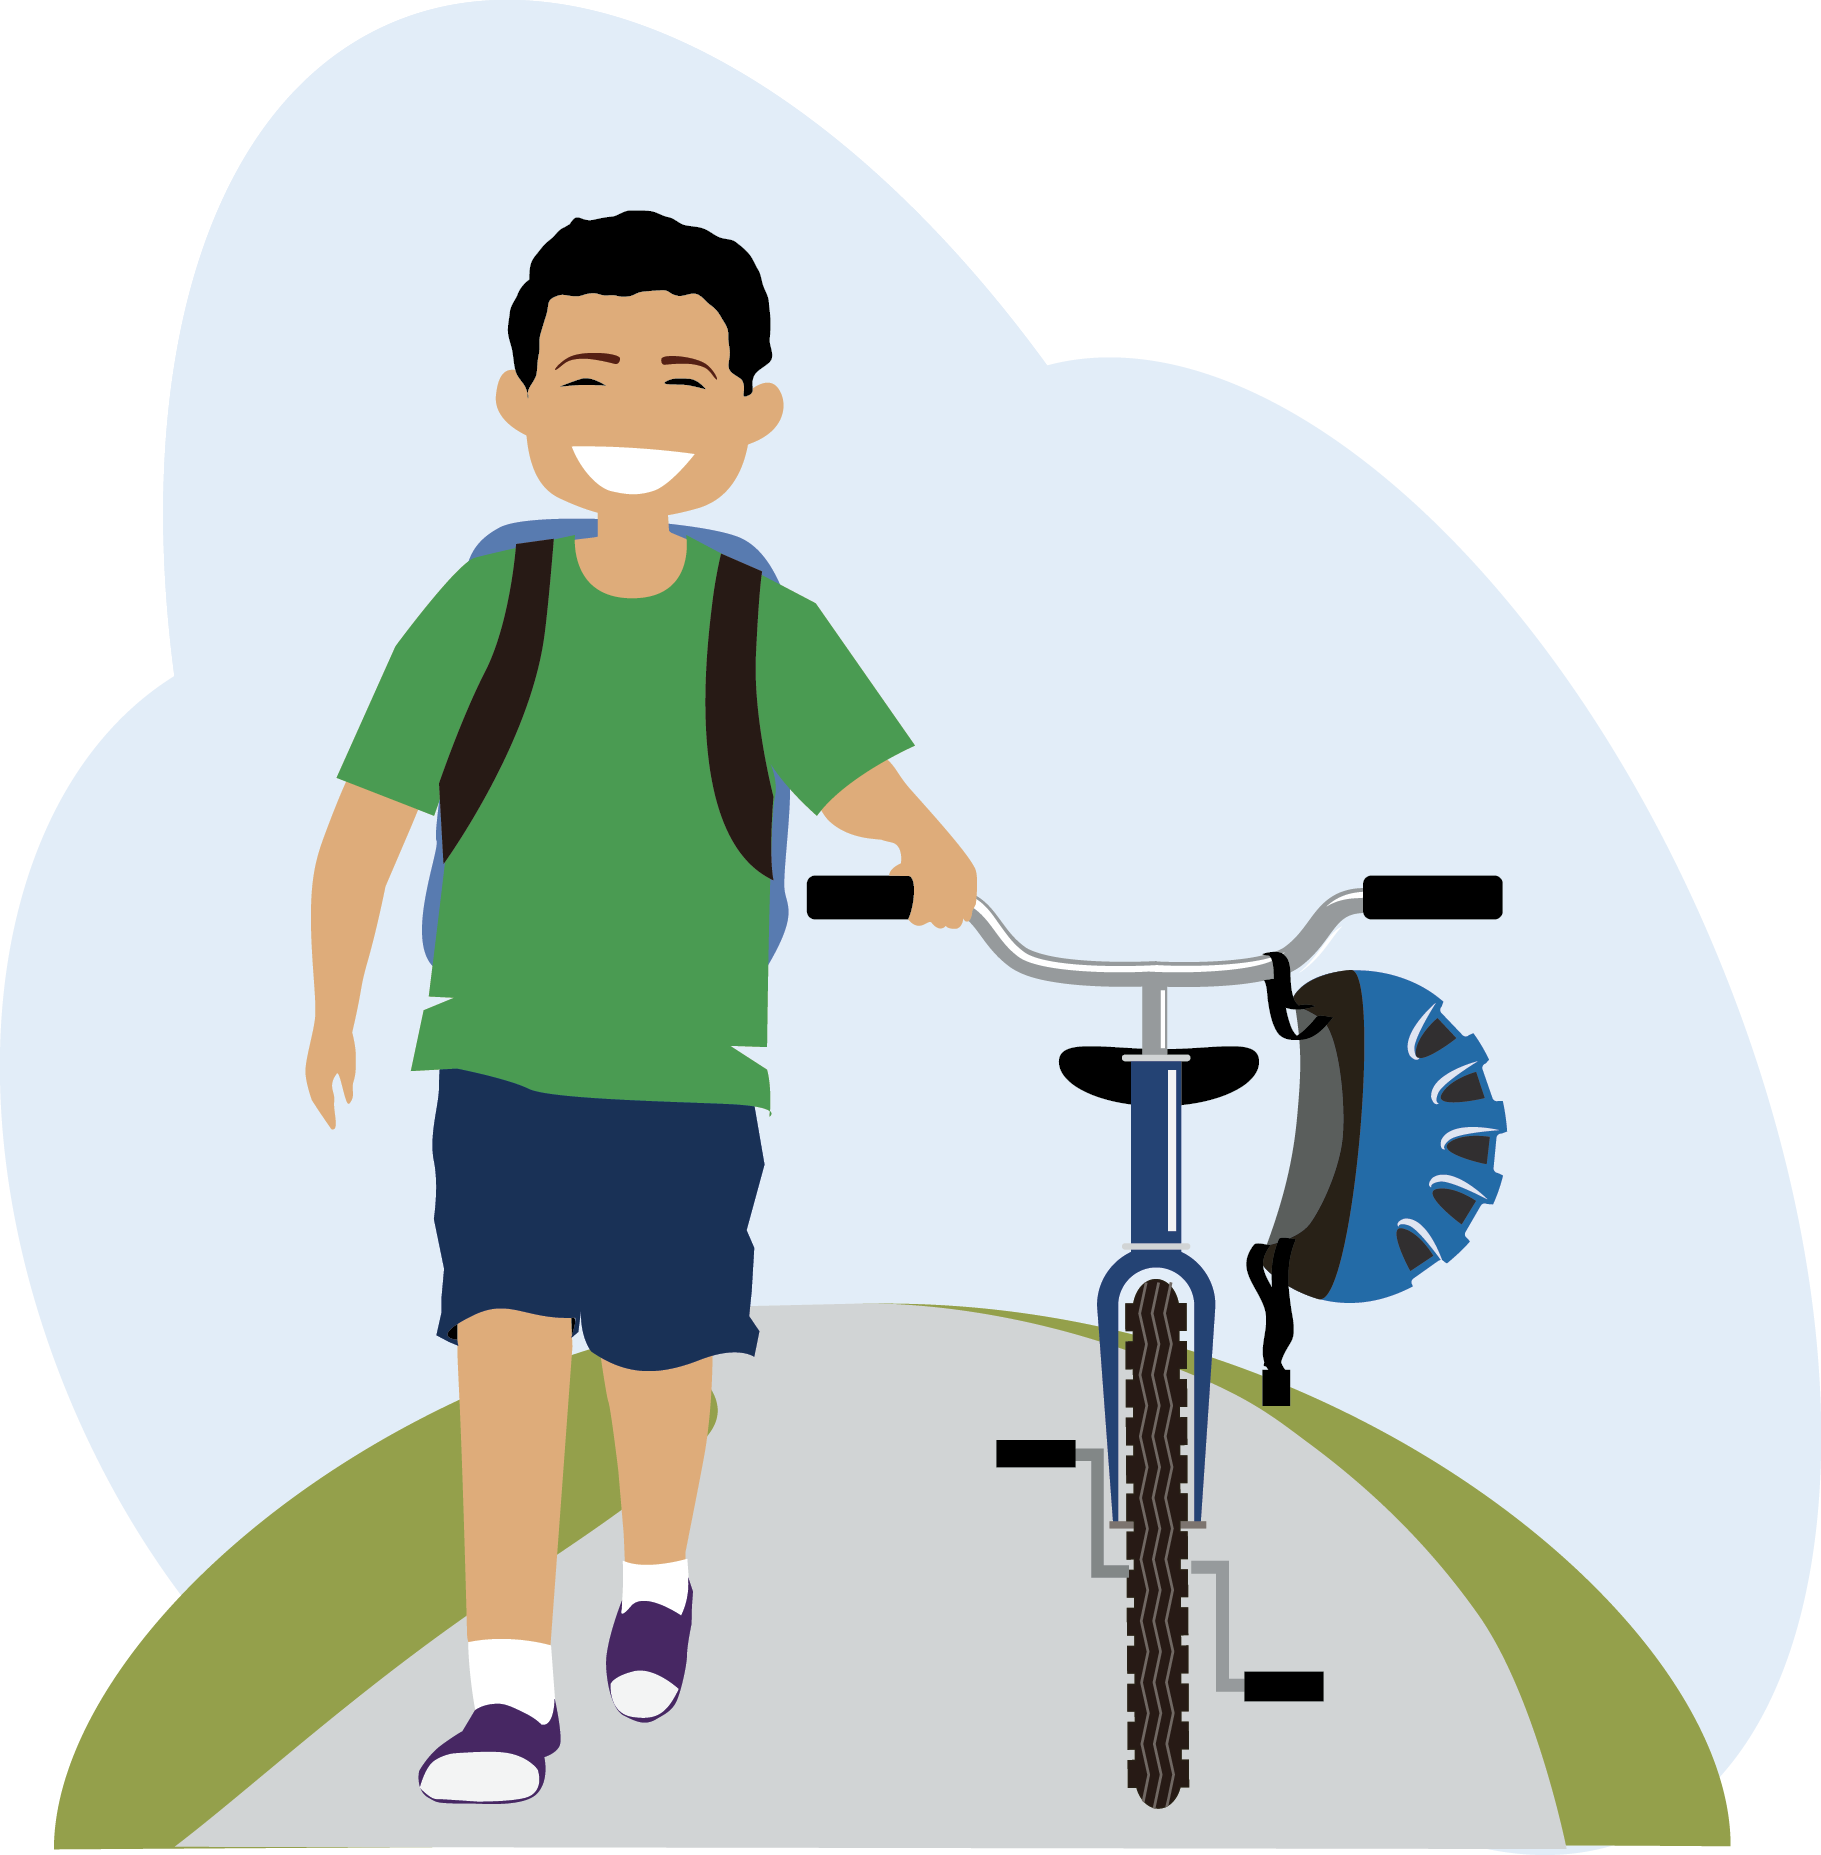 clipart library library Cycling safe free on. Kid walking clipart